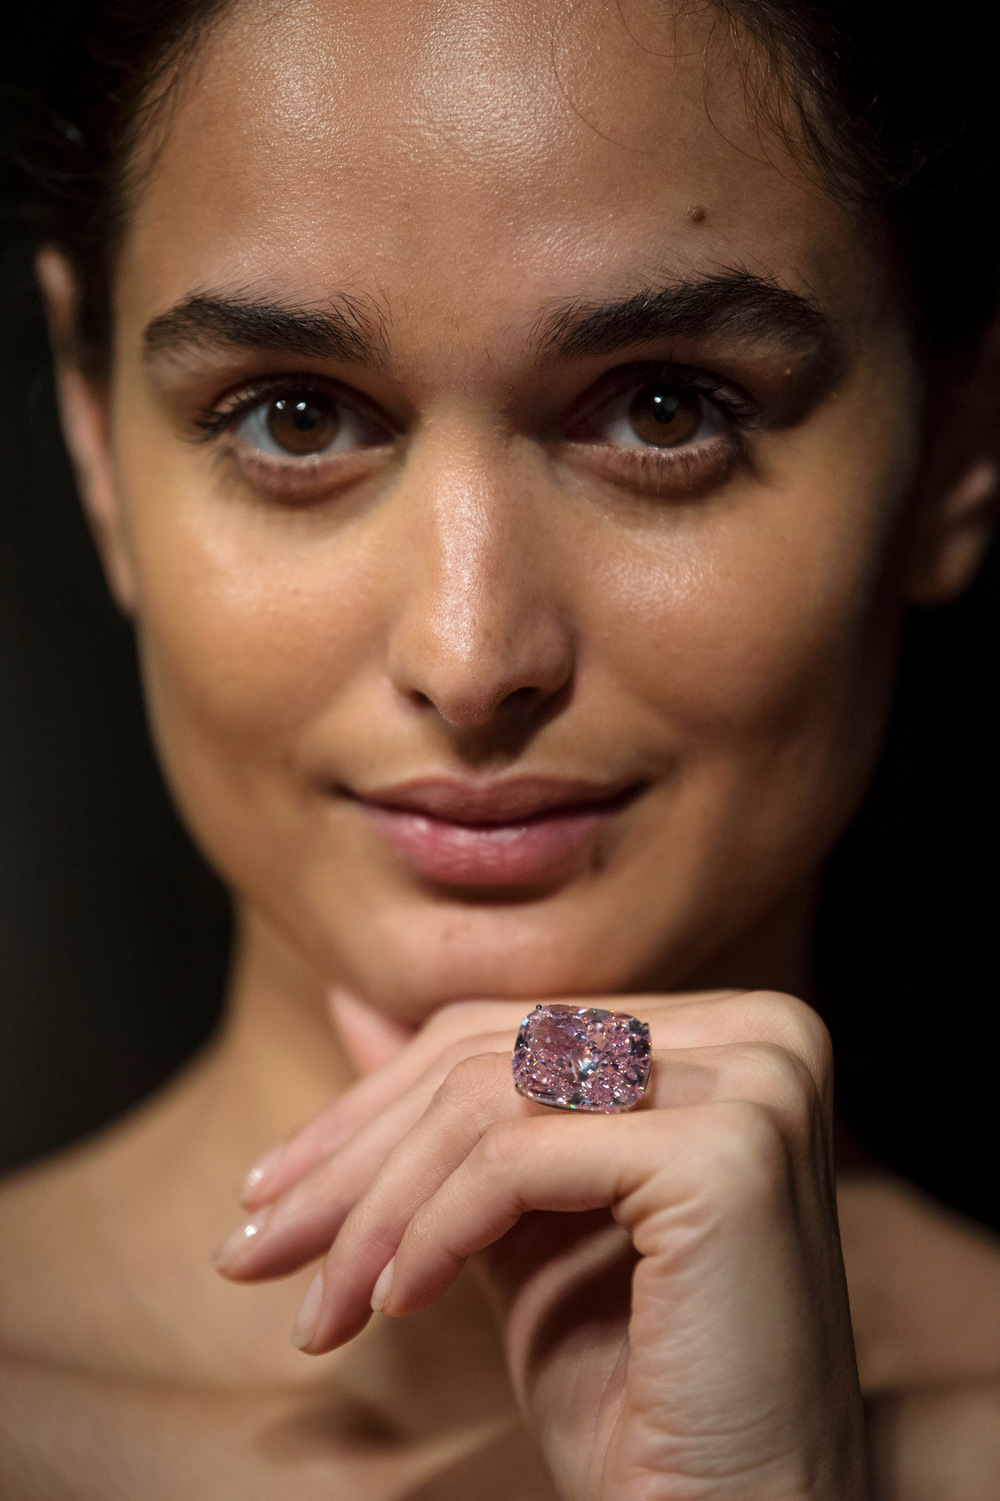 Victoria Jones Press Association Photographer - October 2017  A model wears The Raj Pink, the worlds largest known fancy intense pink diamond and valued at $20-30 million,before it is offered at auction at Sothebys.